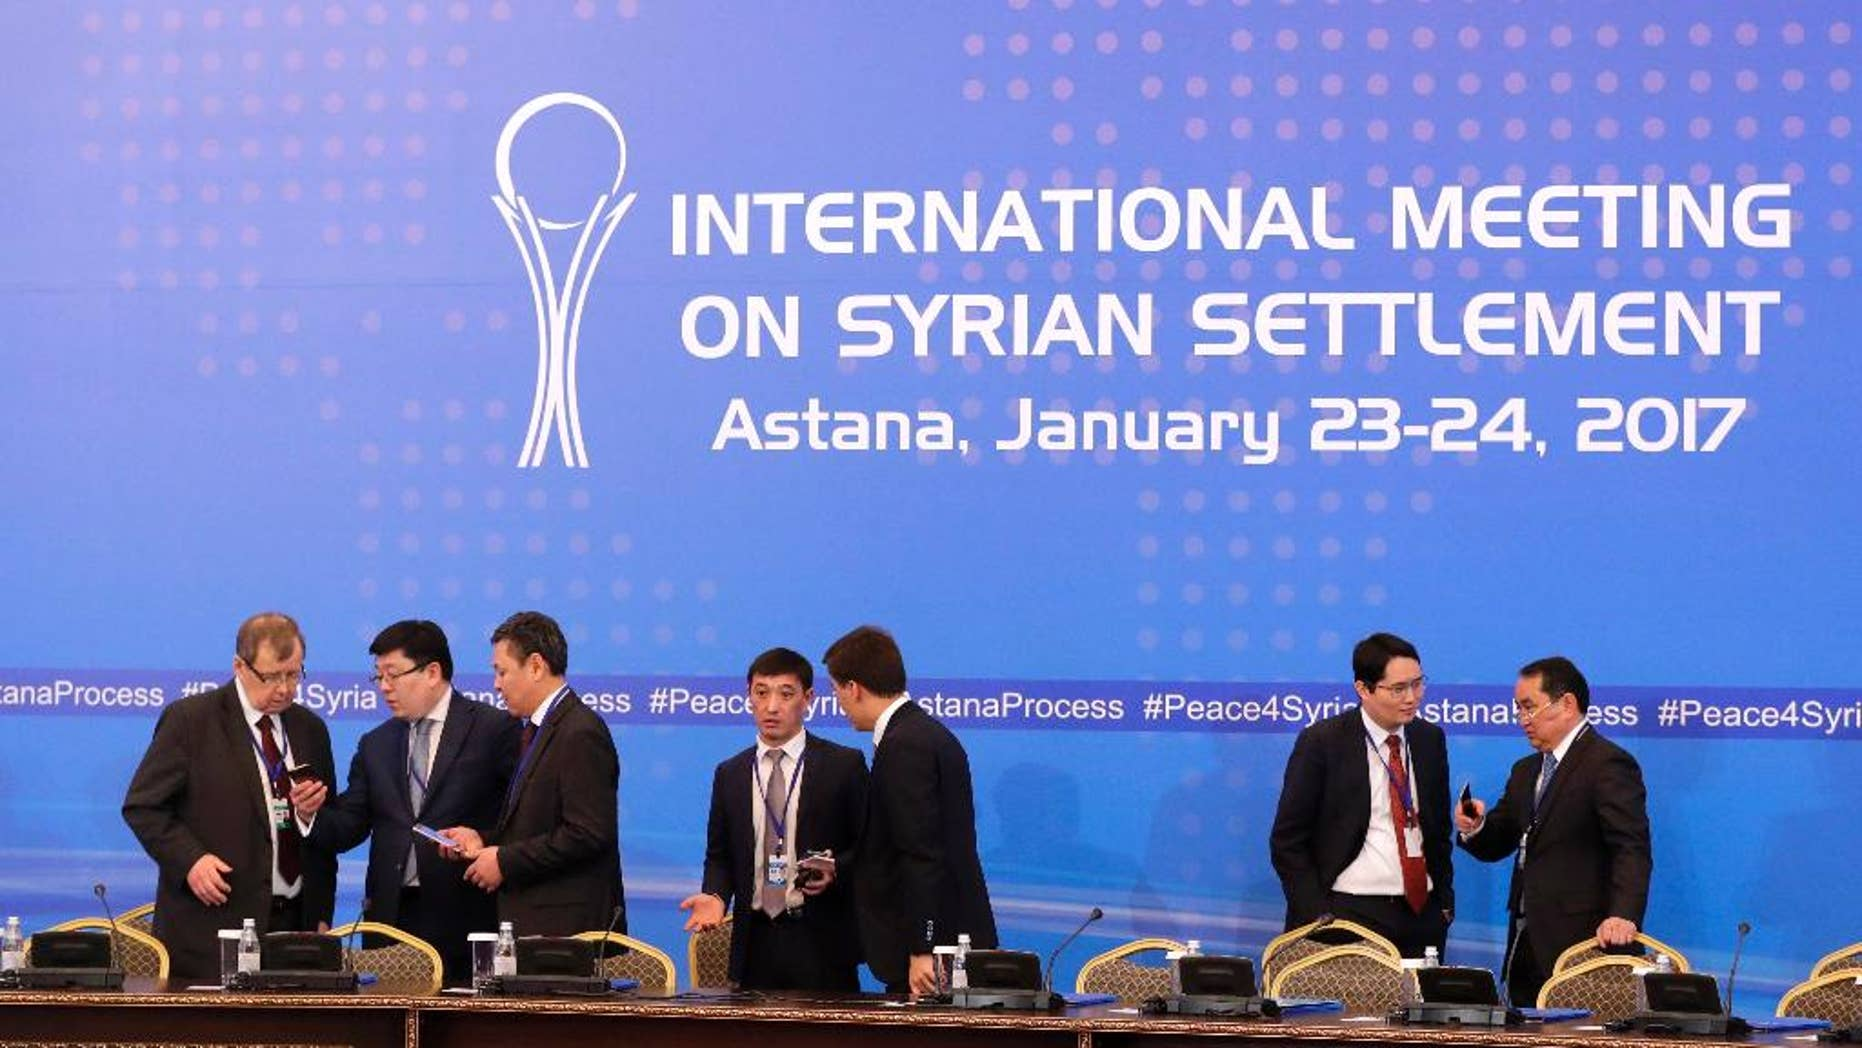 Kazakhstan's officials prepare working space for delegations at a hotel lobby where Russia, Iran and Turkey will hold talks on Syrian peace, in Astana, Kazakhstan, Monday, Jan. 23, 2017. The talks are the latest attempt to forge a political settlement to end a war that has by most estimates killed more than 400,000 people since March 2011 and displaced more than half the country's population. (AP Photo/Sergei Grits)